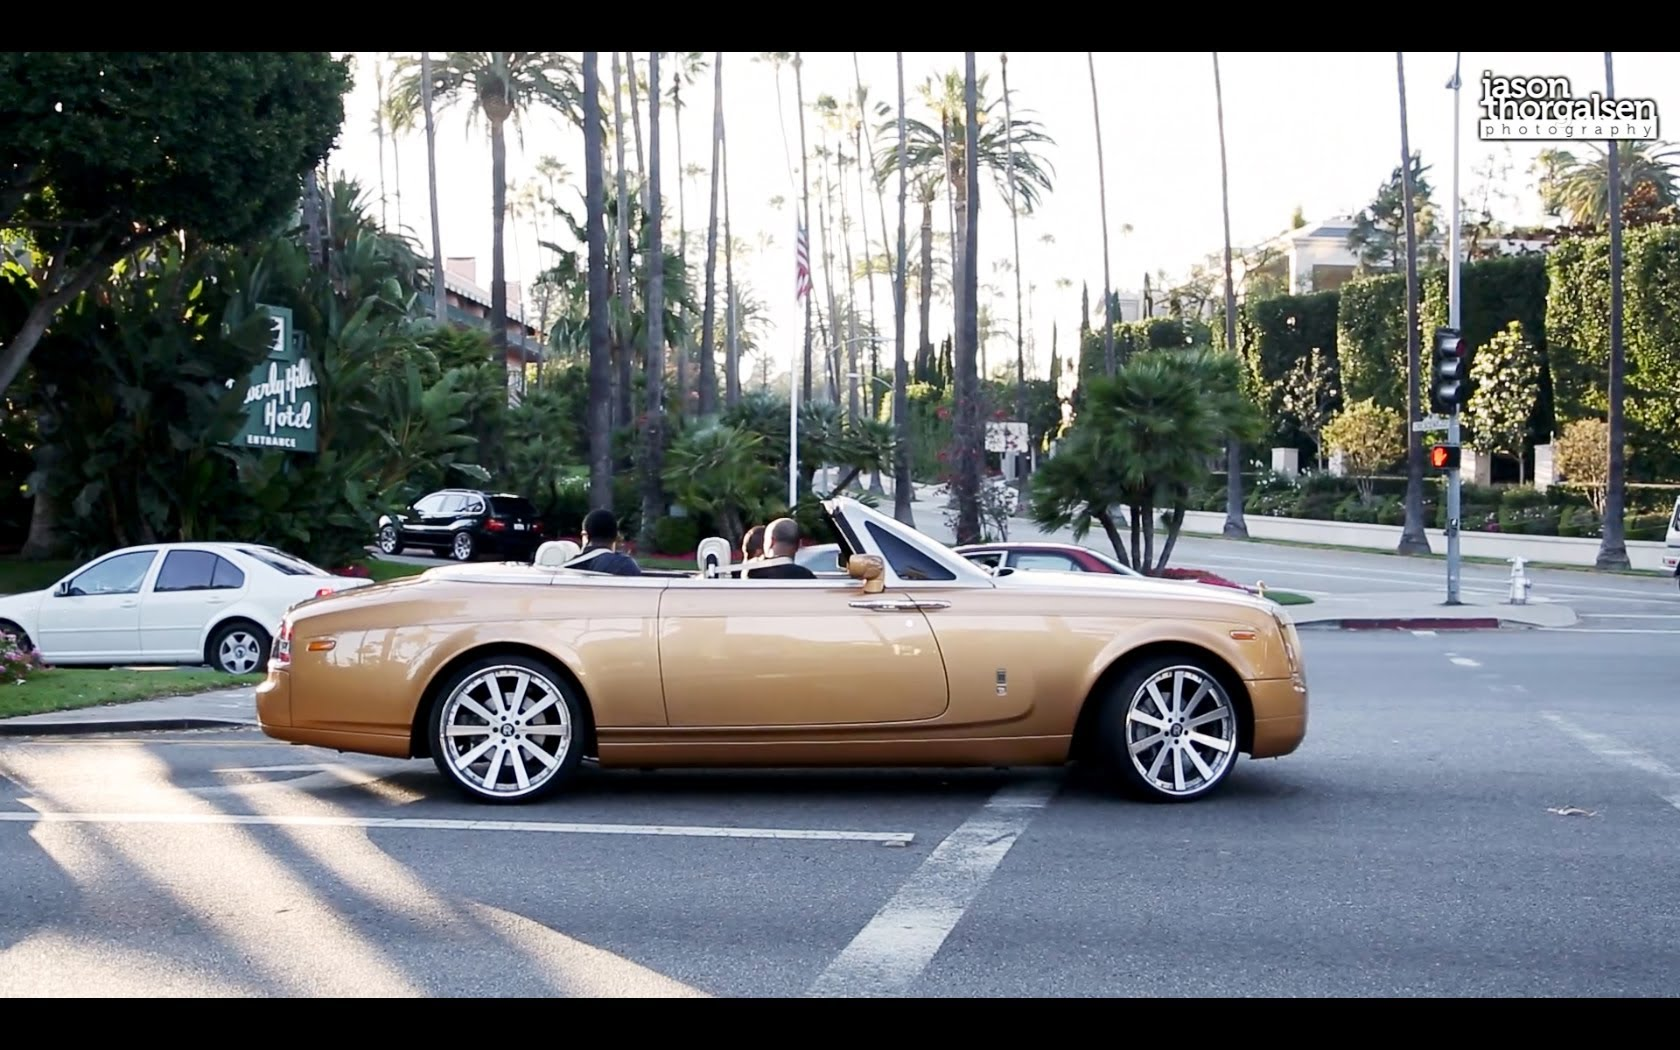 Gold Rolls Royce >> Shiny Bling Gold Rolls Royce Distracts Driving Causing Him Crash